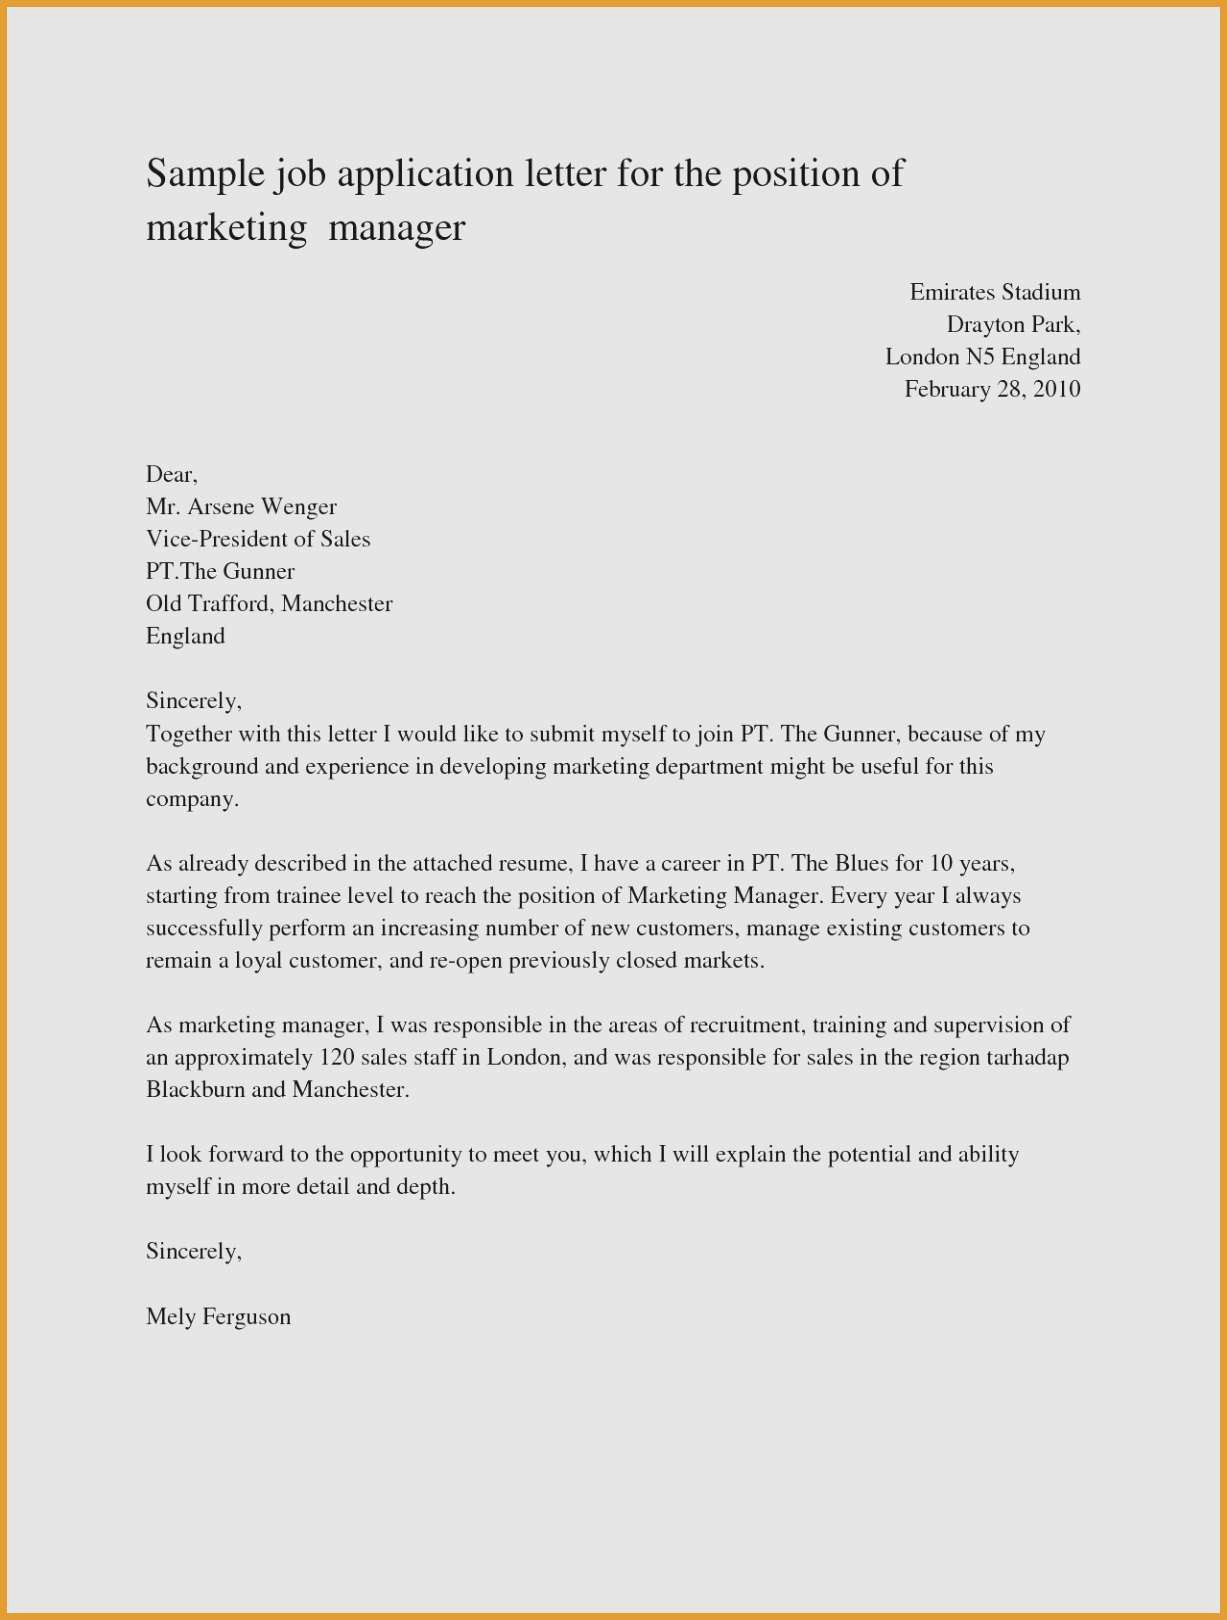 Resume Template for Sales Manager - Sales Manager Resume Templates